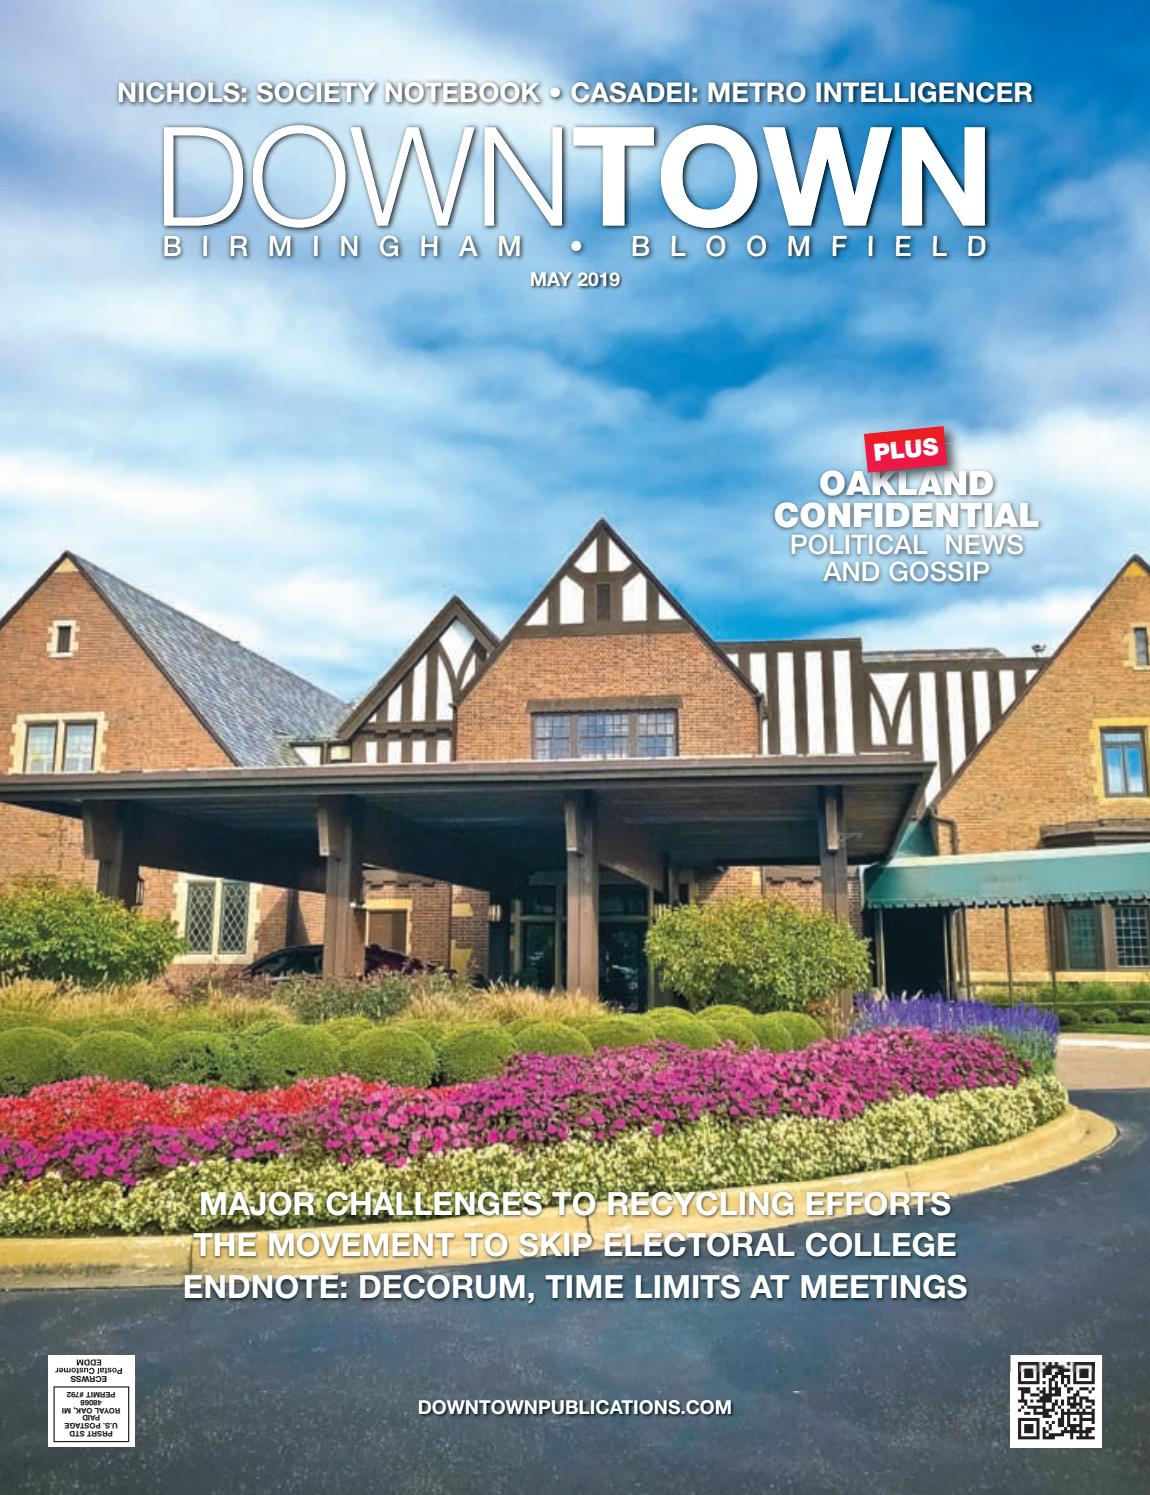 Downtown Newsmagazine Birmingham Bloomfield By Downtown Publications Inc Issuu